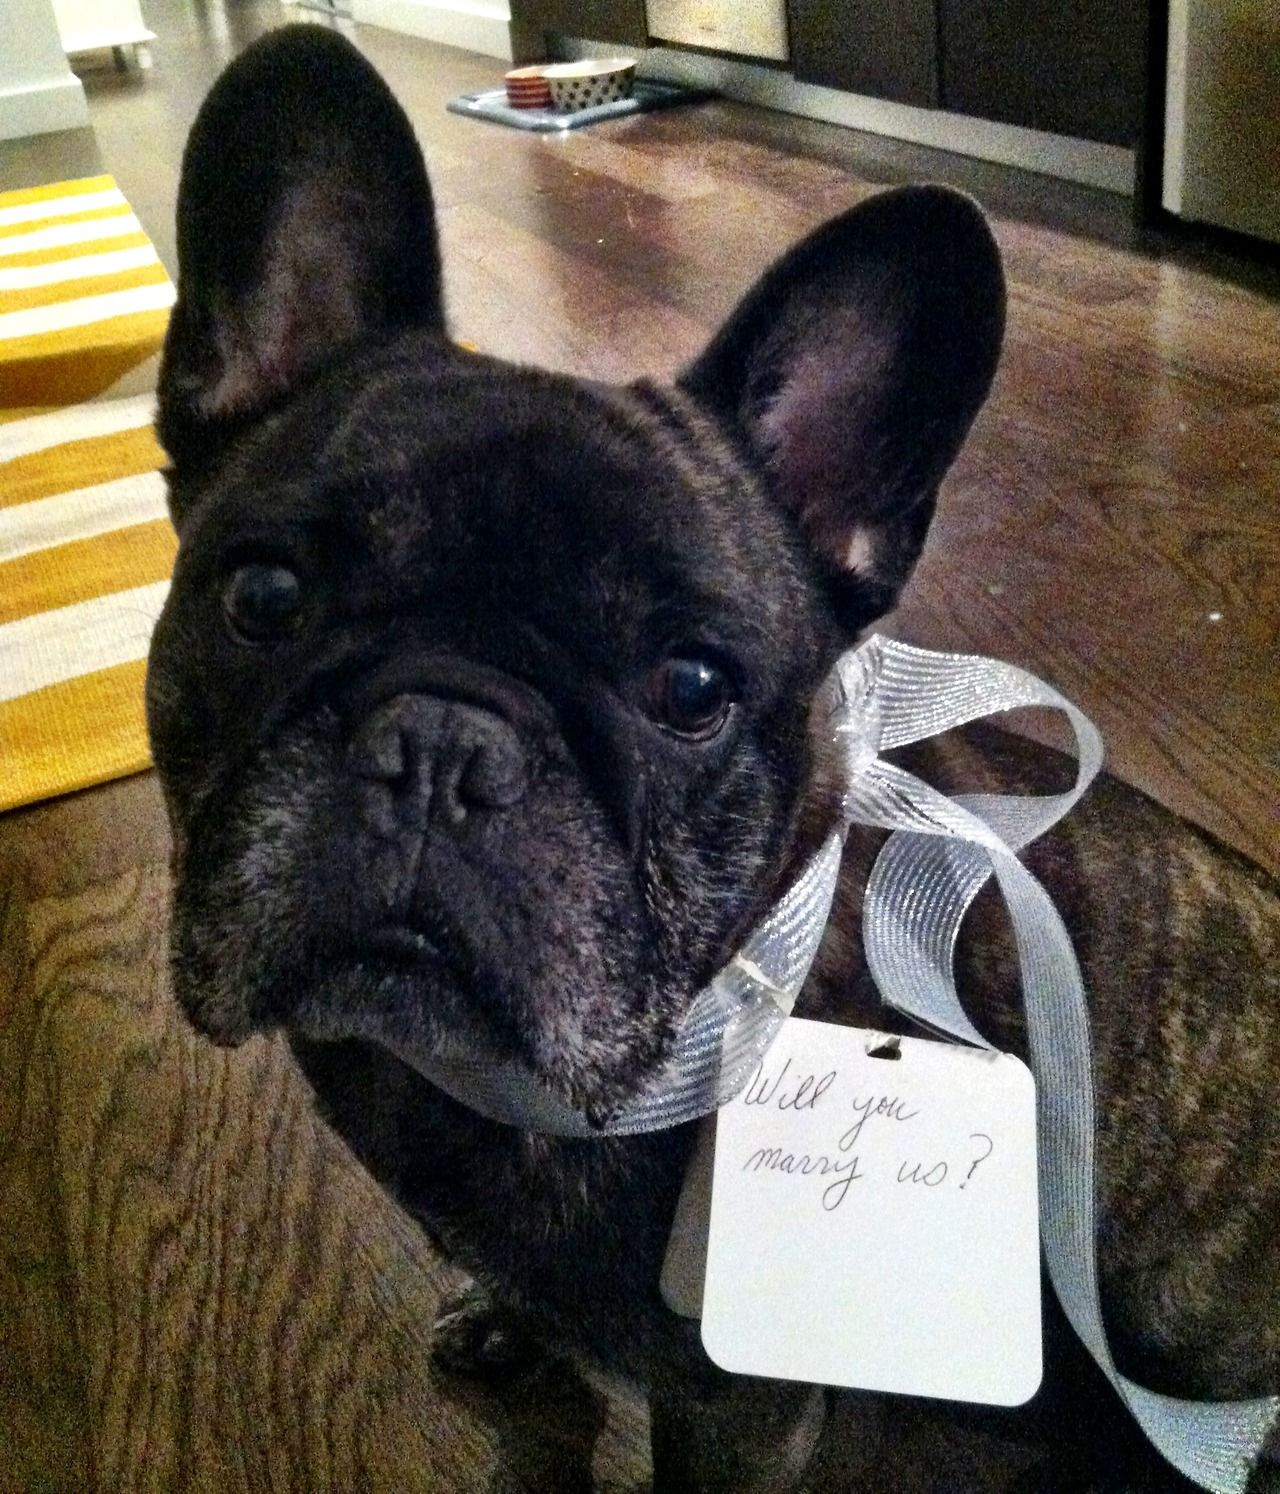 My name is Gozer. I live in NYC. My dad and I proposed